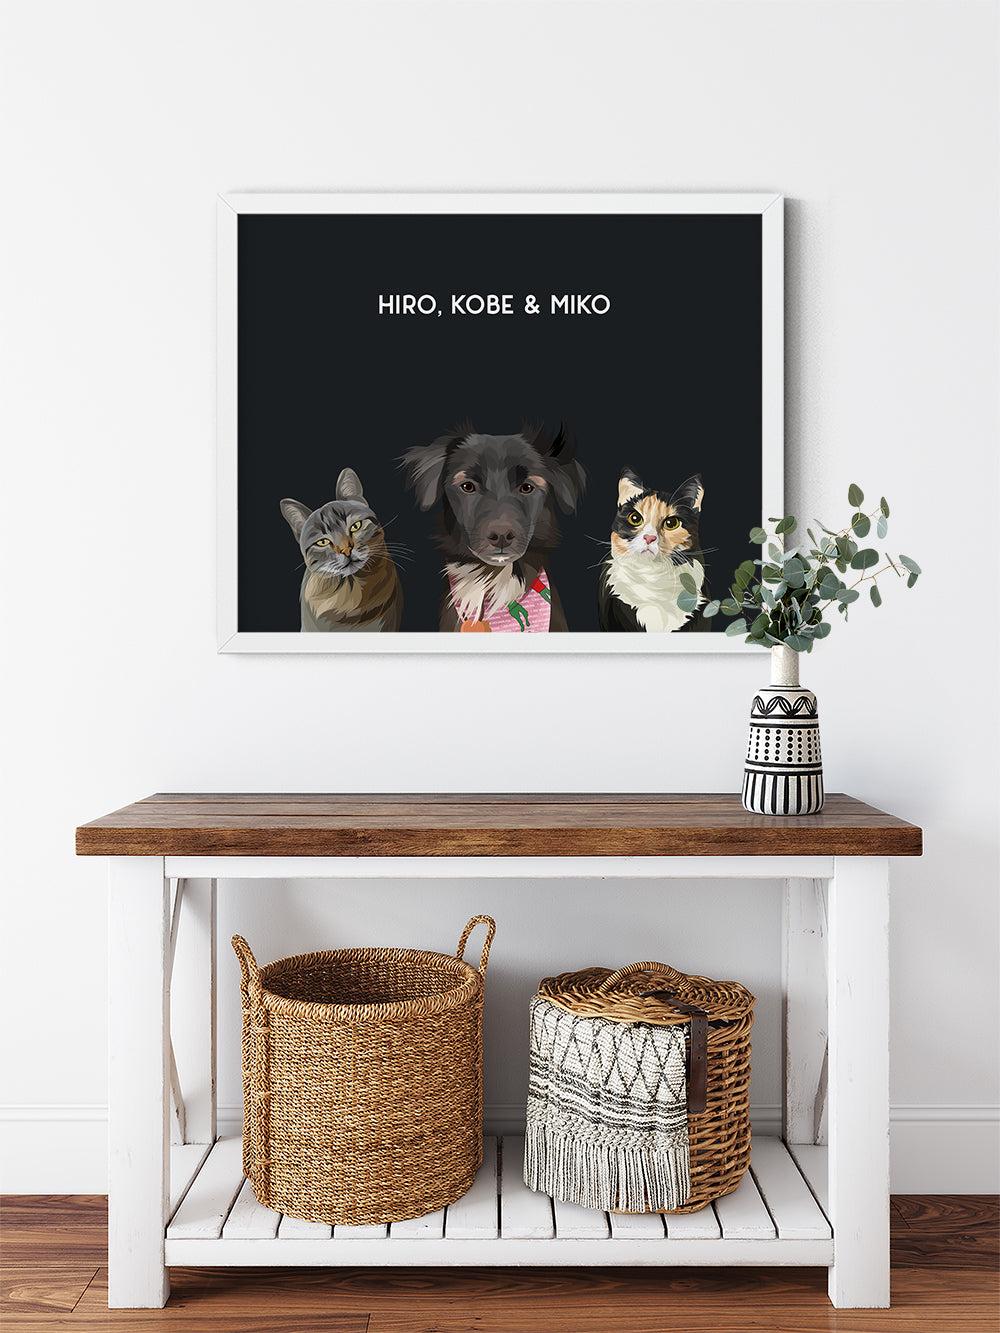 Trio custom framed pet portrait of a cat, dog and cat on onyx black background with white frame. Personalized name of cat, dog and cat in white font.